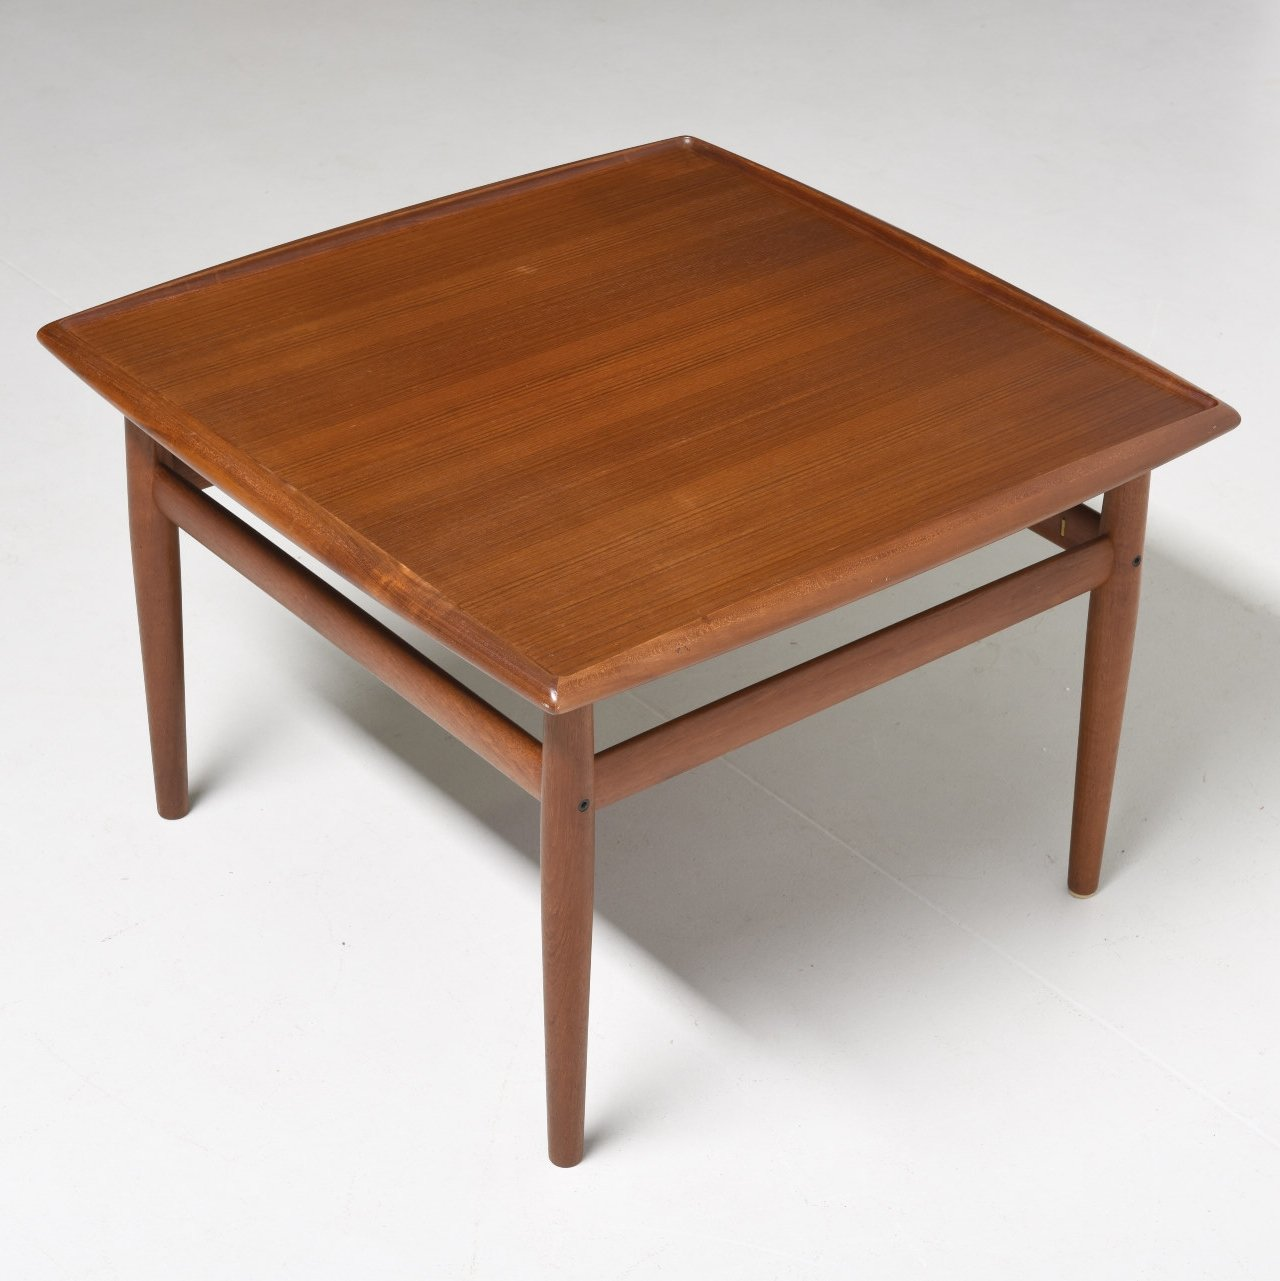 Small Side Table By Grete Jalk For Glostrup Møbelfabrik, 1950s